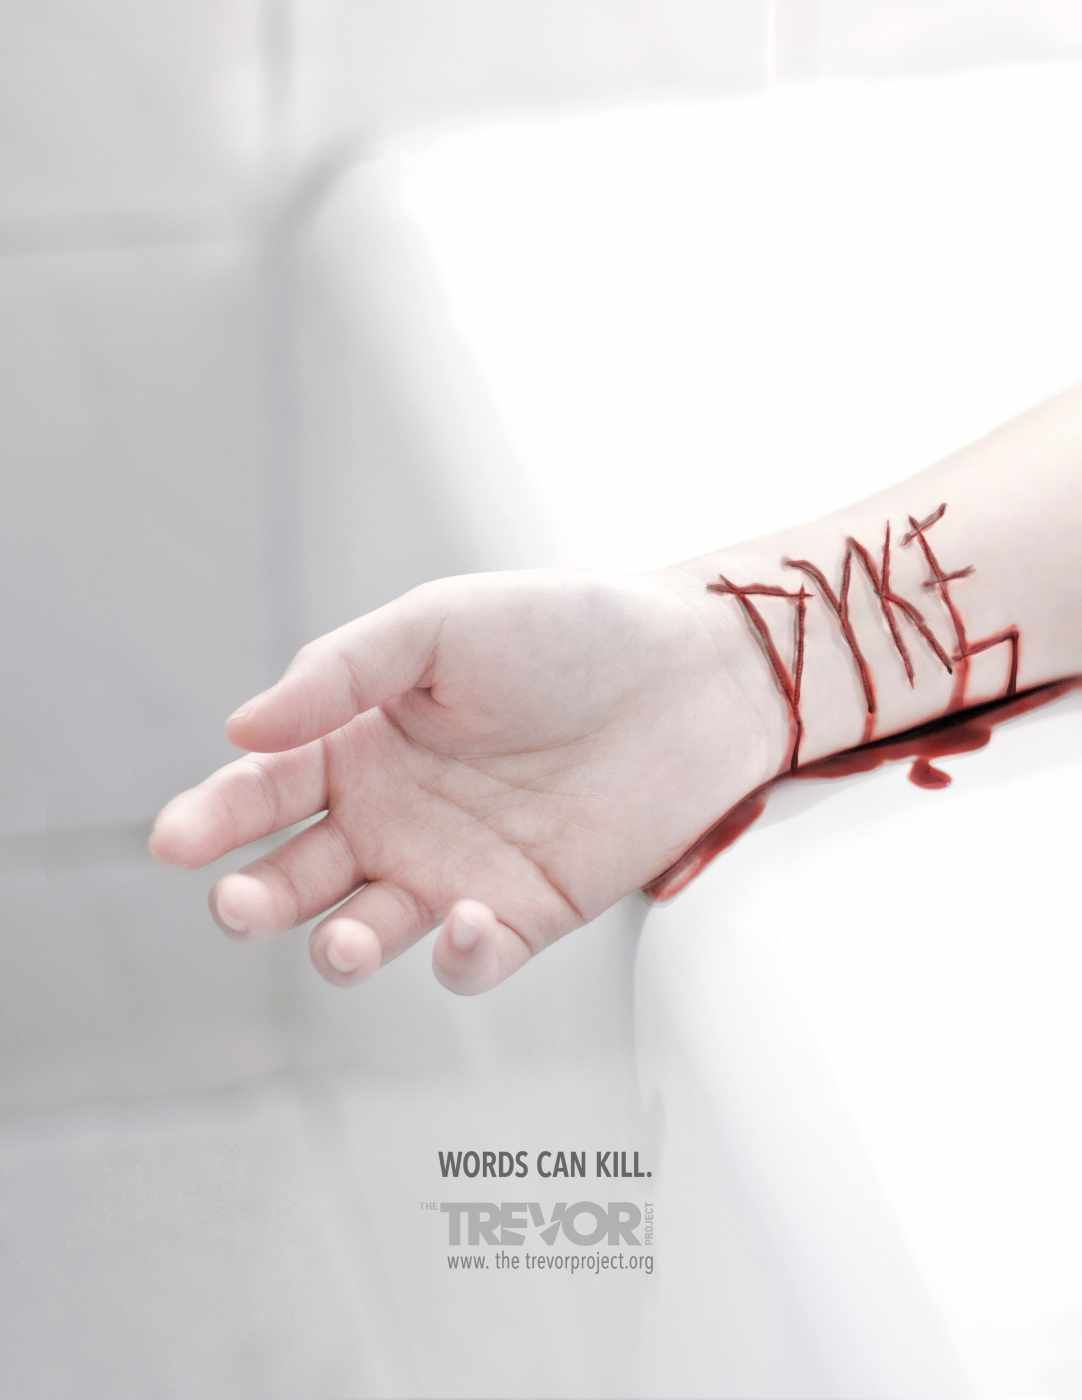 The Trevor Project: Veins Words can kill. Advertising School: Miami Ad School, San Francisco, USA